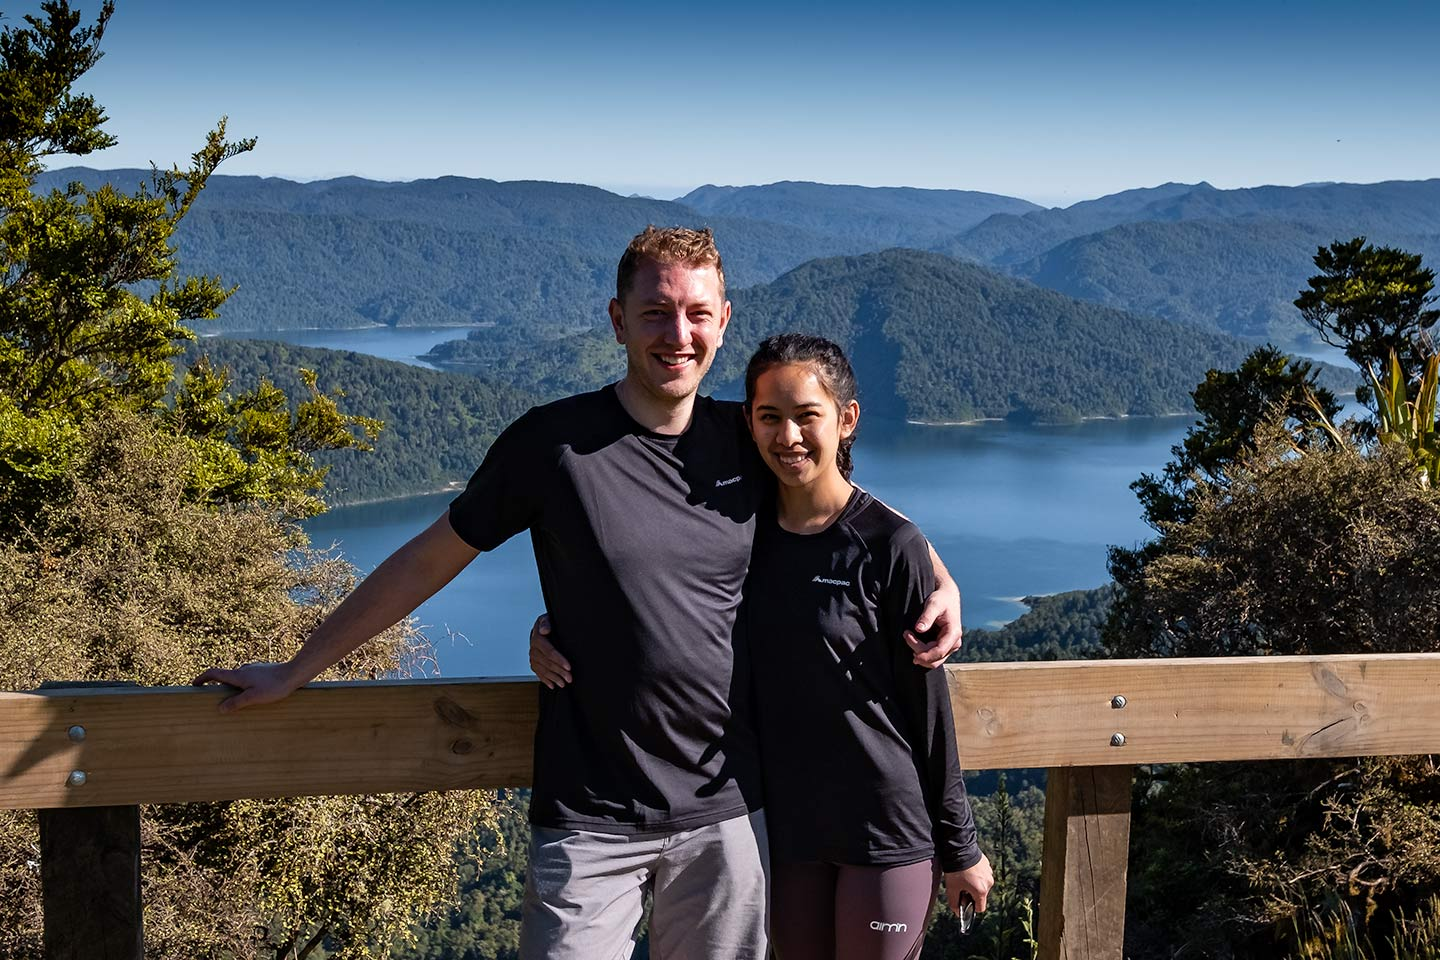 A man and woman photographed with a lake in the background. This photo was taken at Panekire hut on the Lake Waikaremoana Great Walk